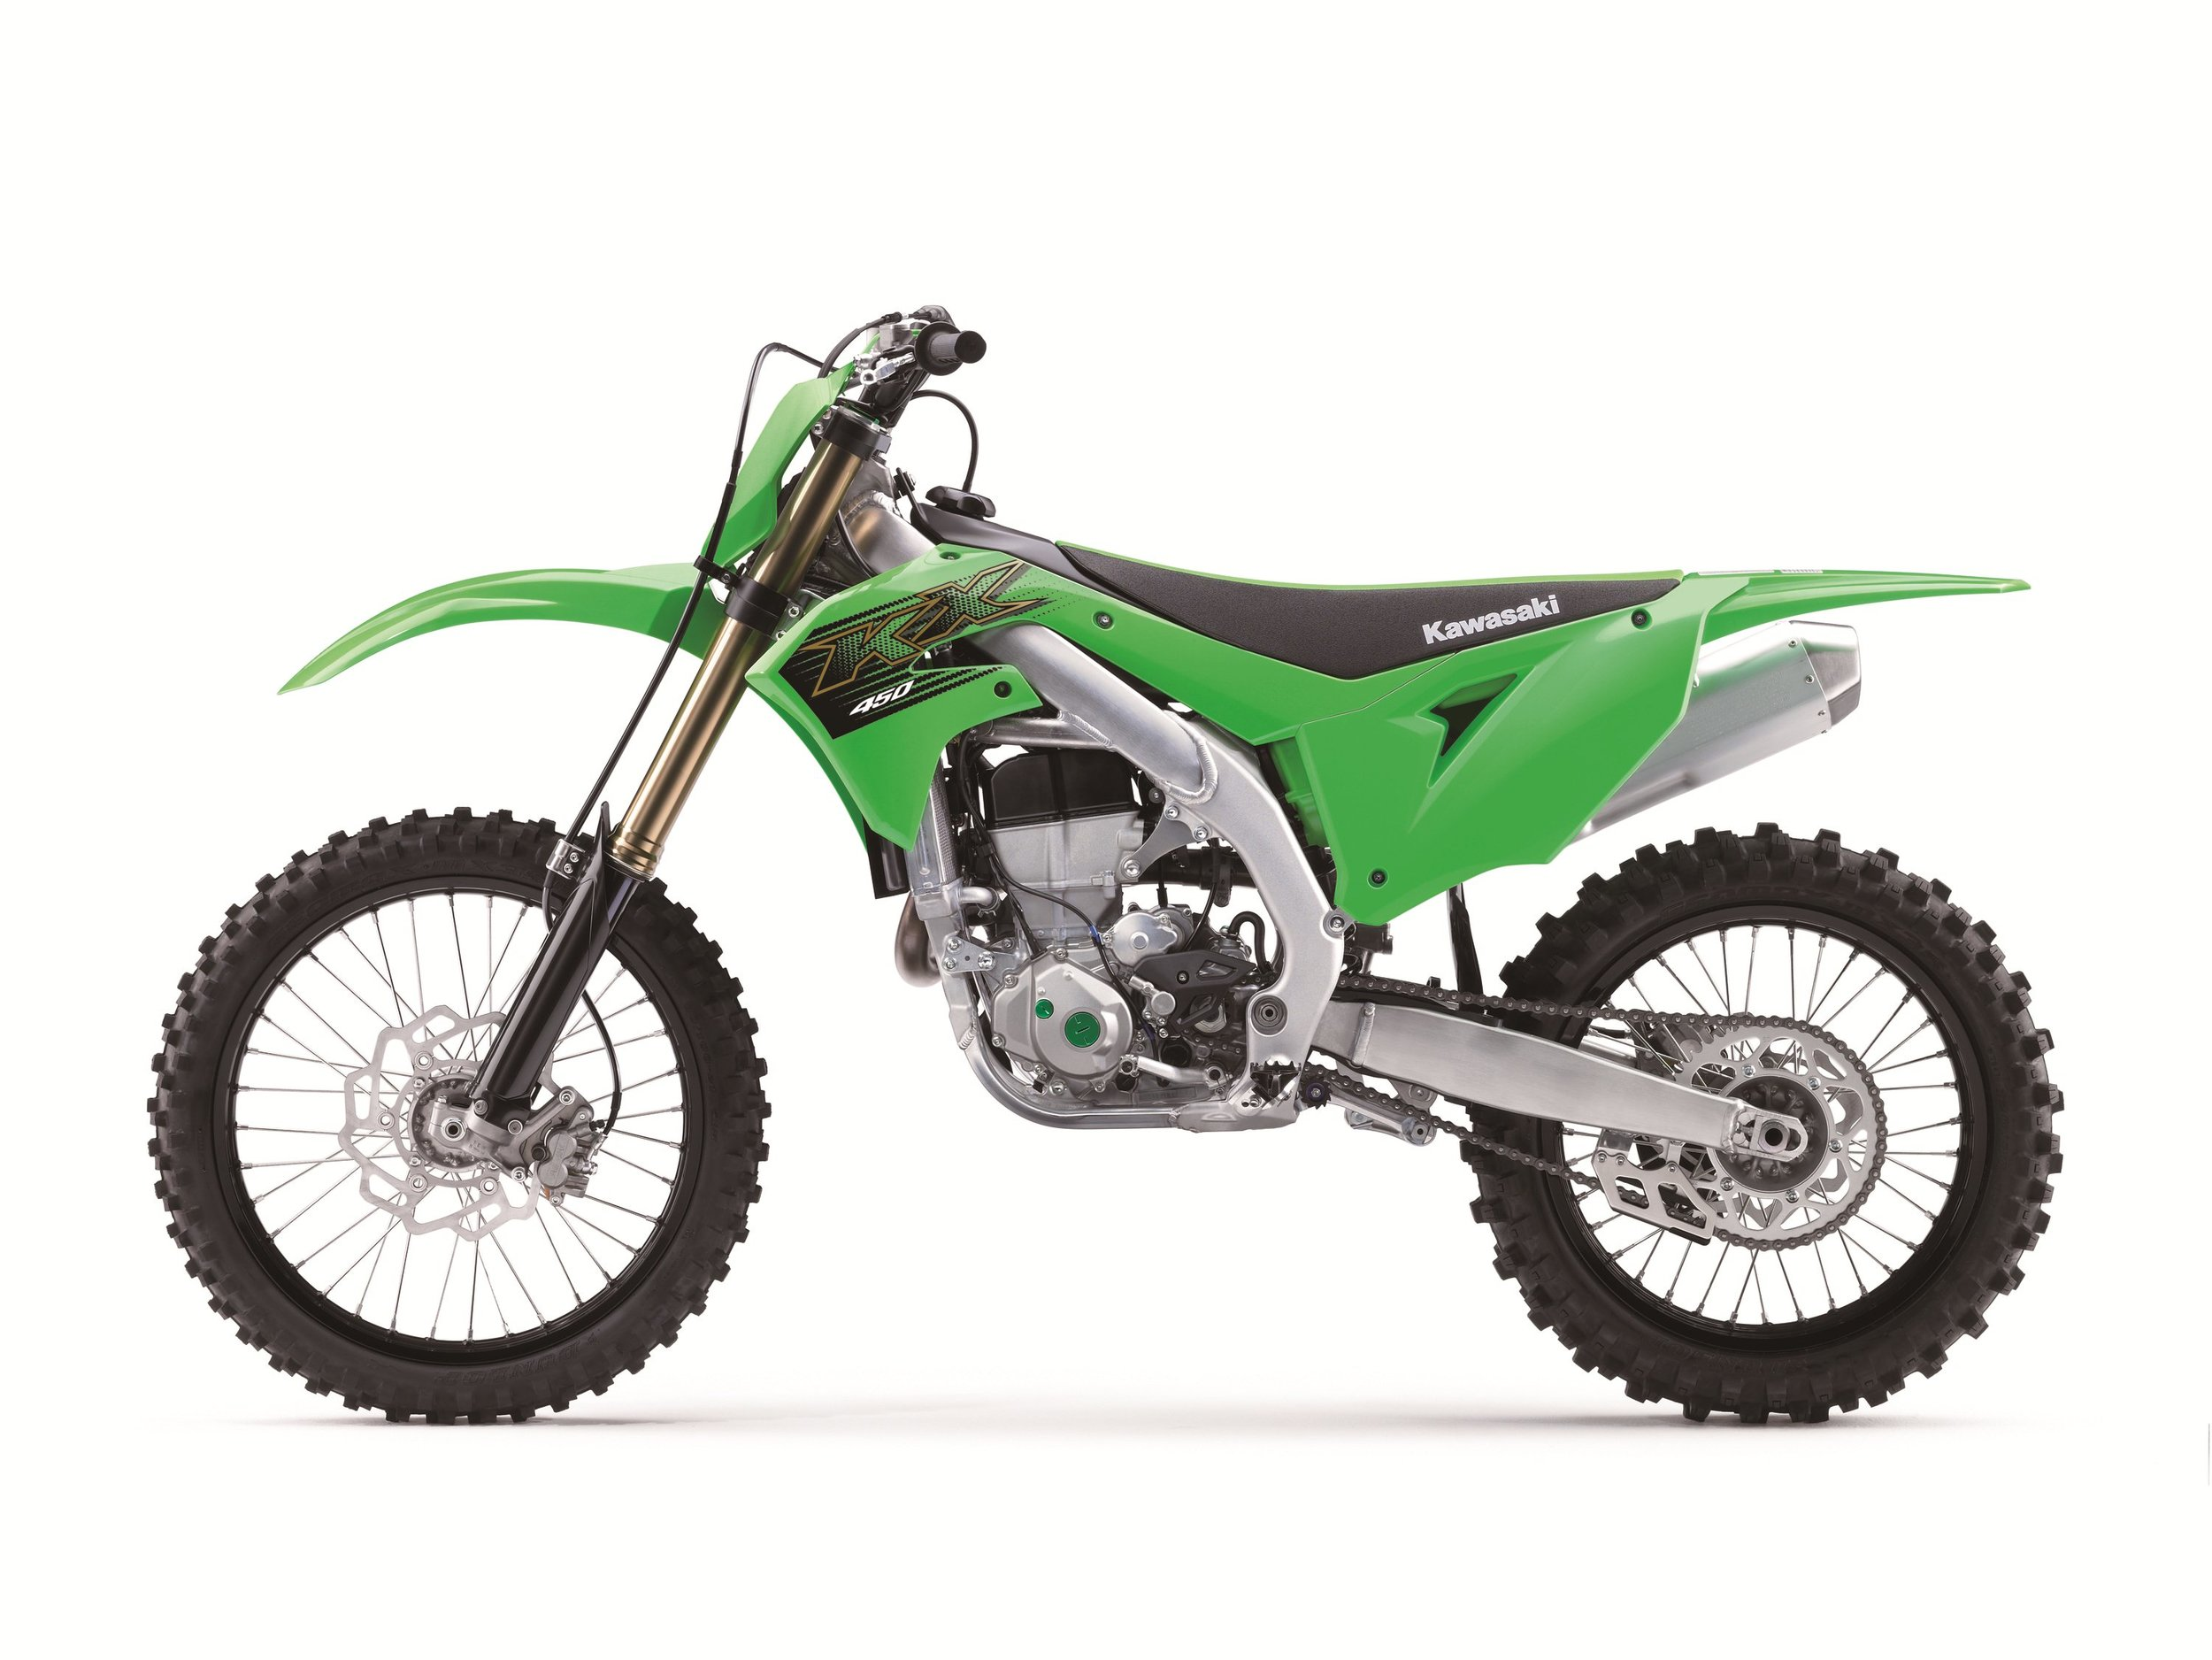 20KX450J_201GN1DLS2CG_A_1.high.jpeg